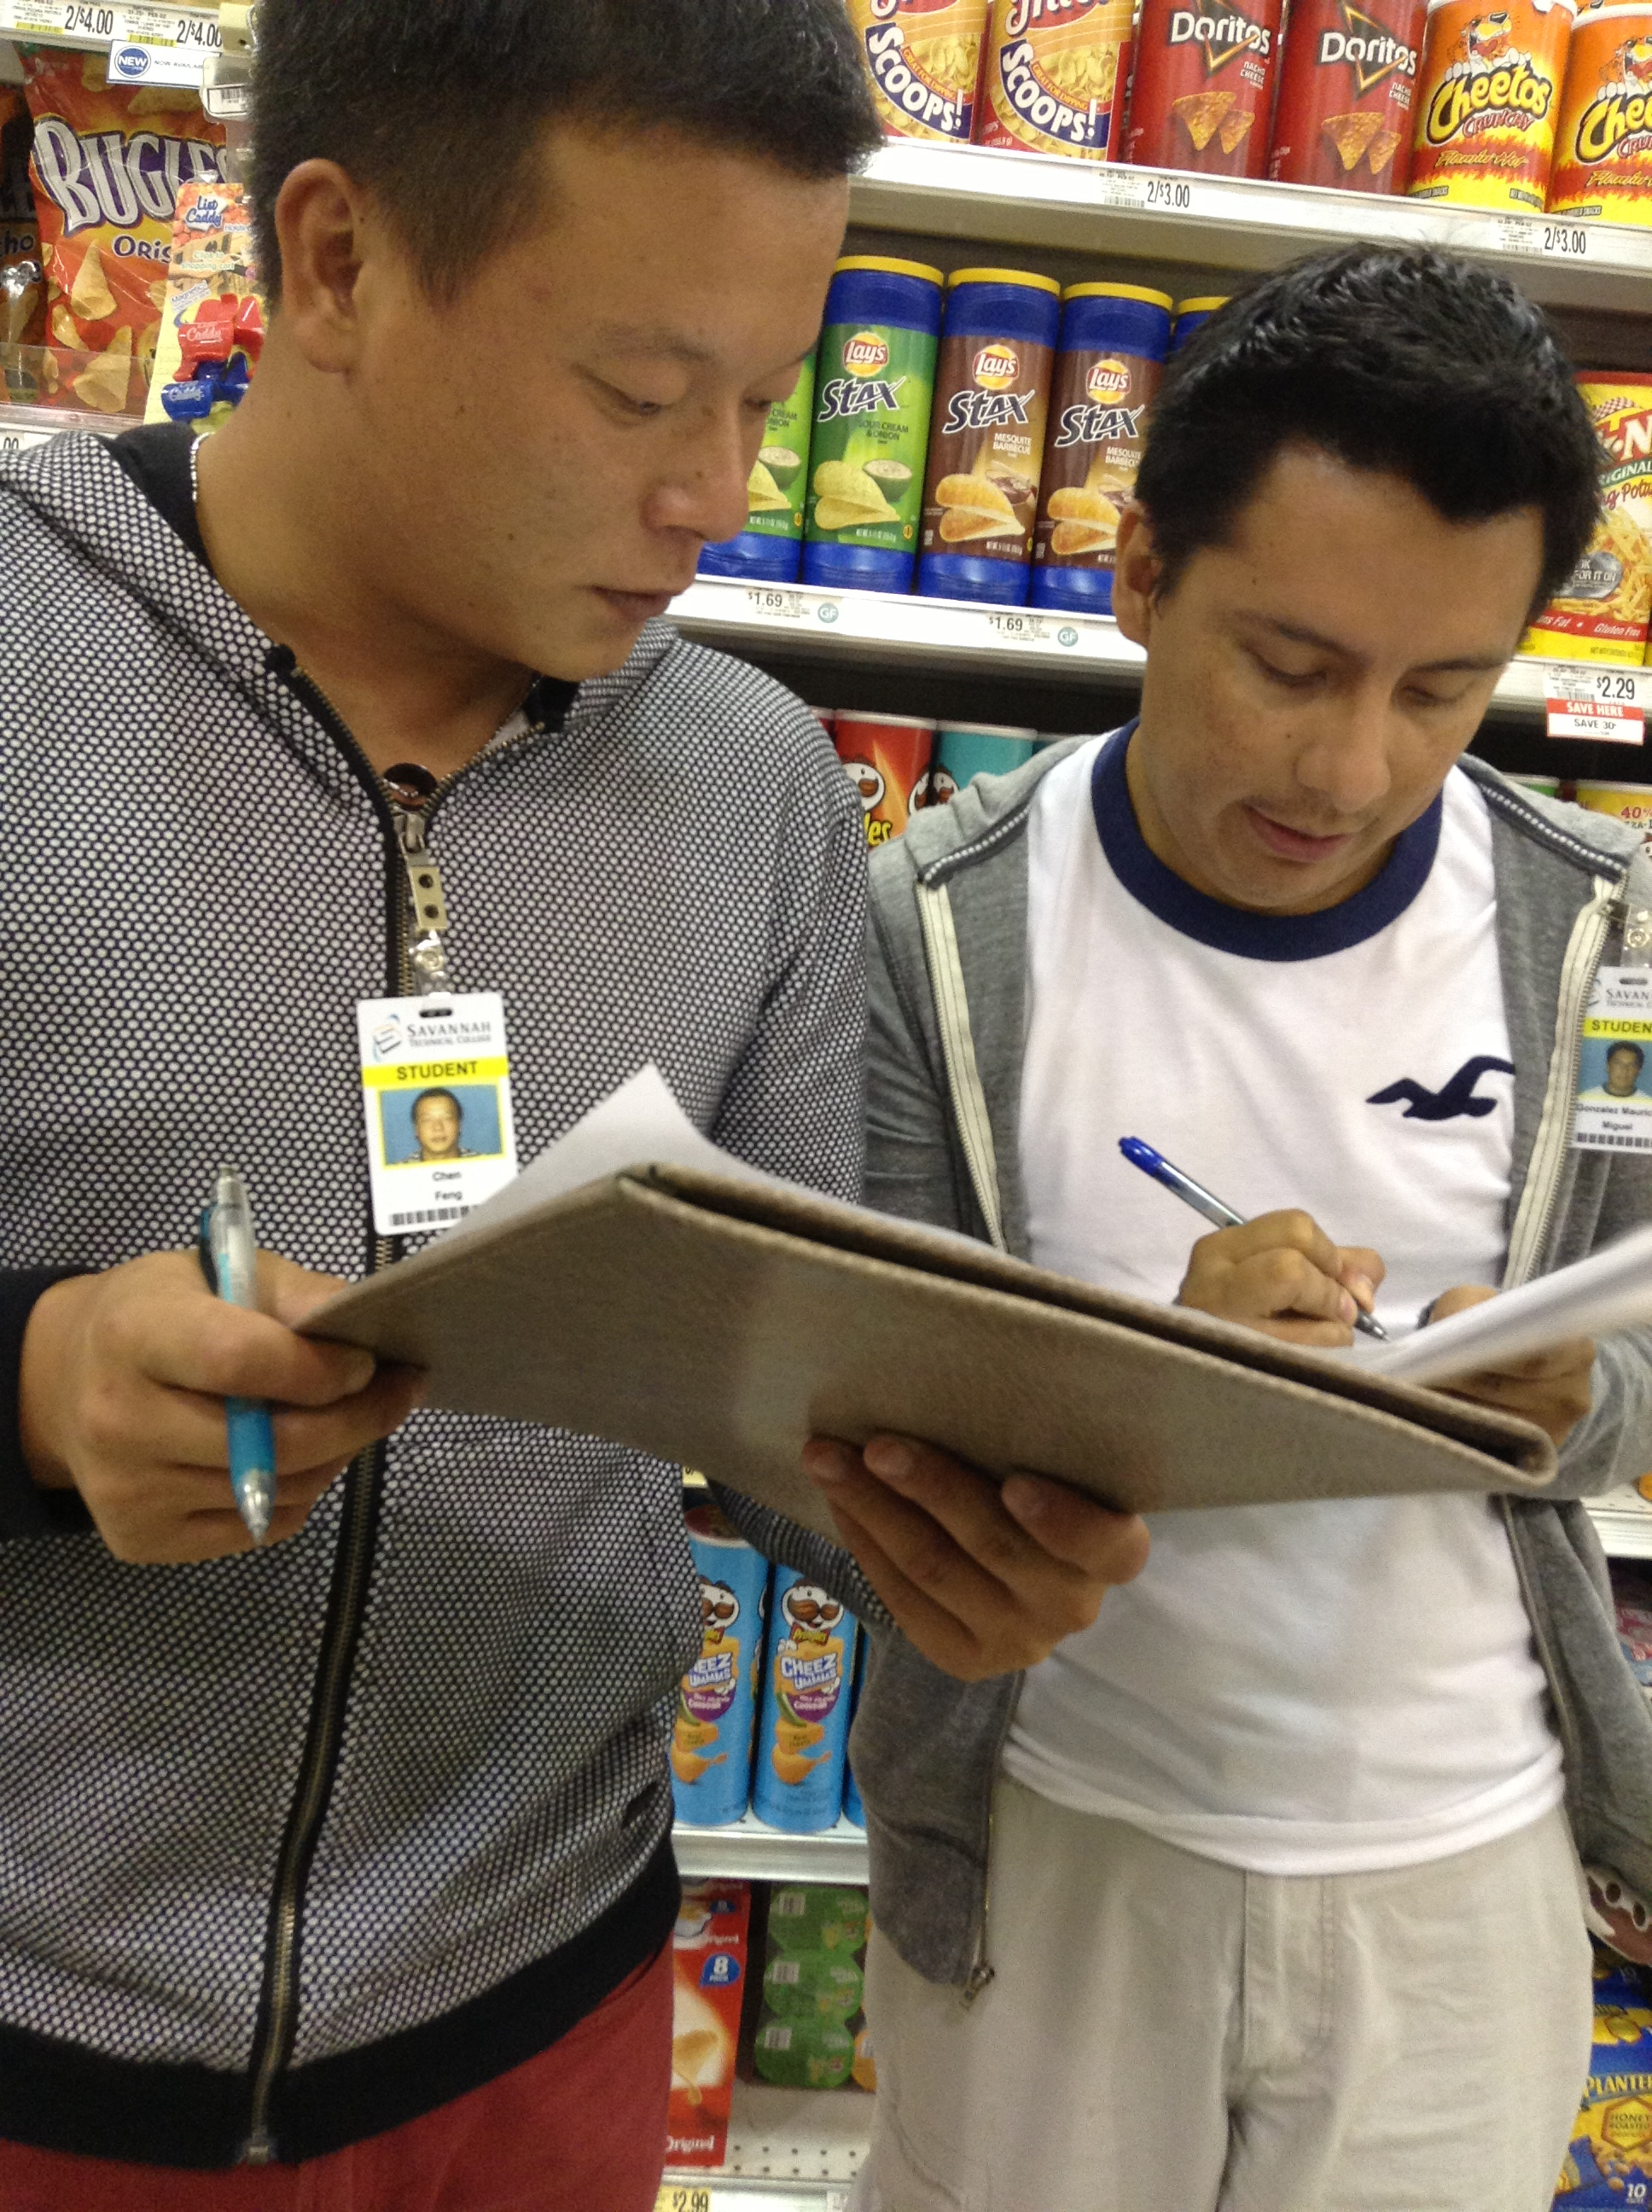 Students learning in a grocery store